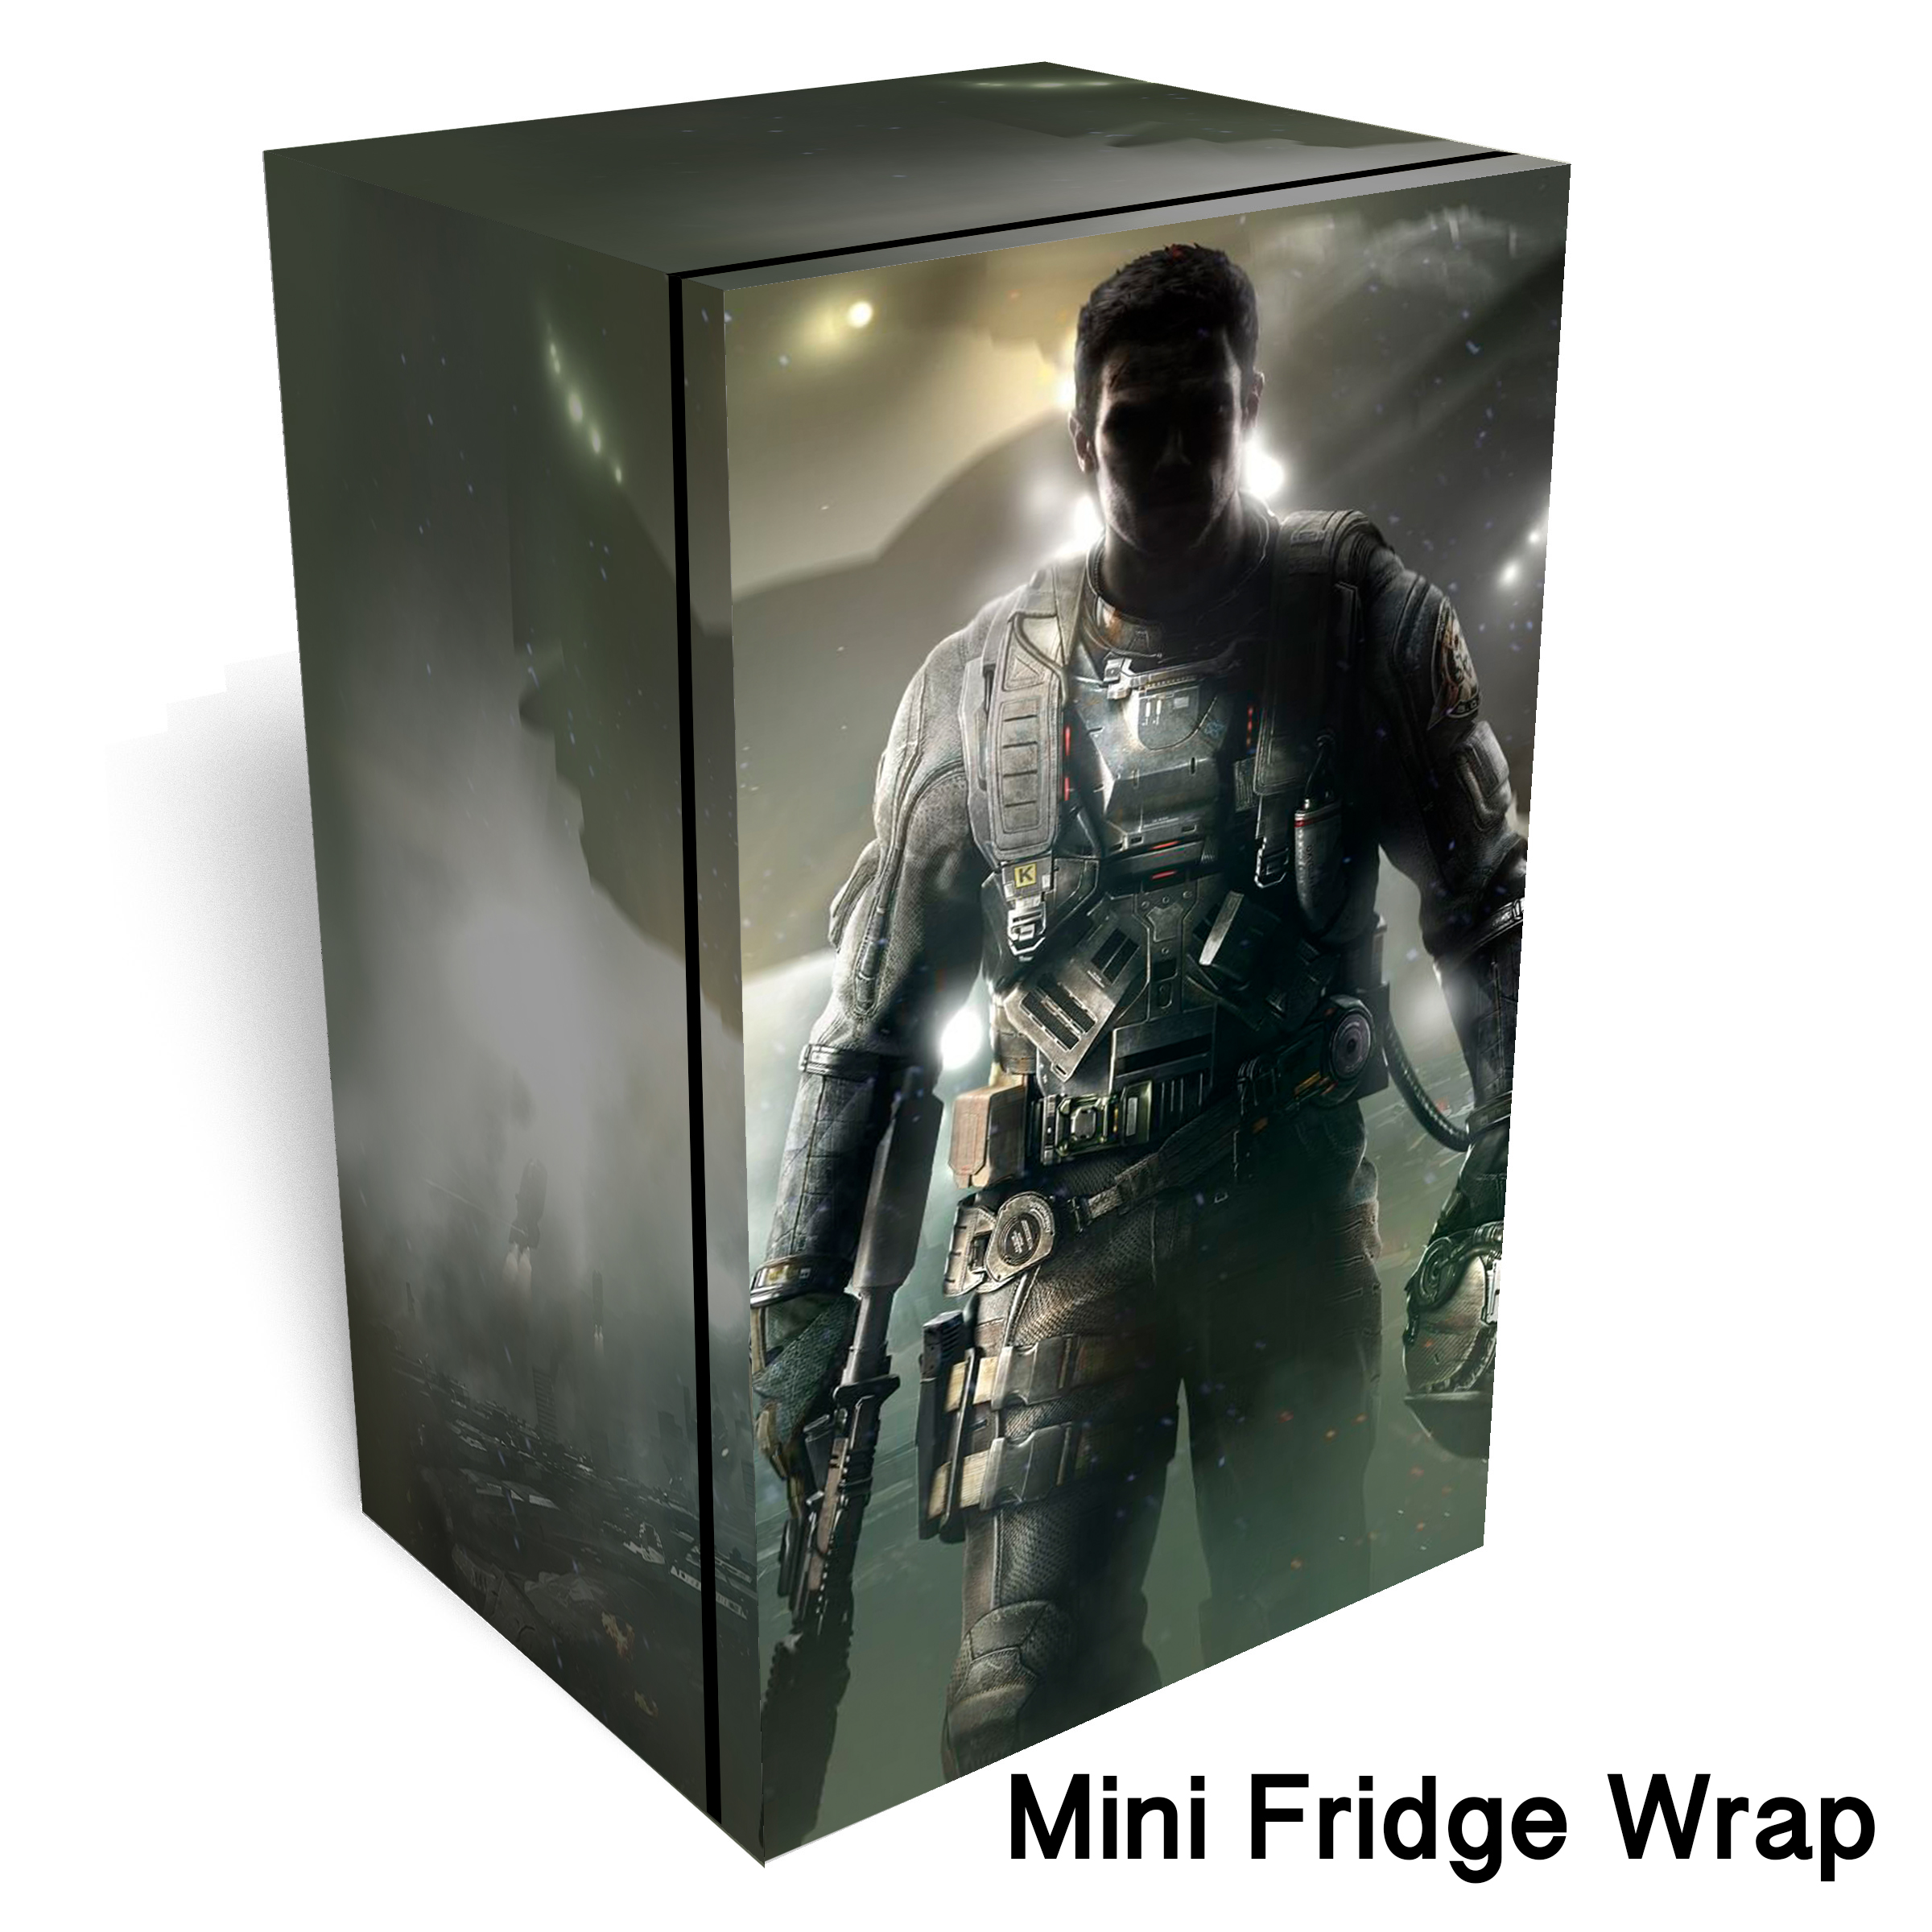 Call of Duty Infinite Warfare Mini Fridge wrap 1